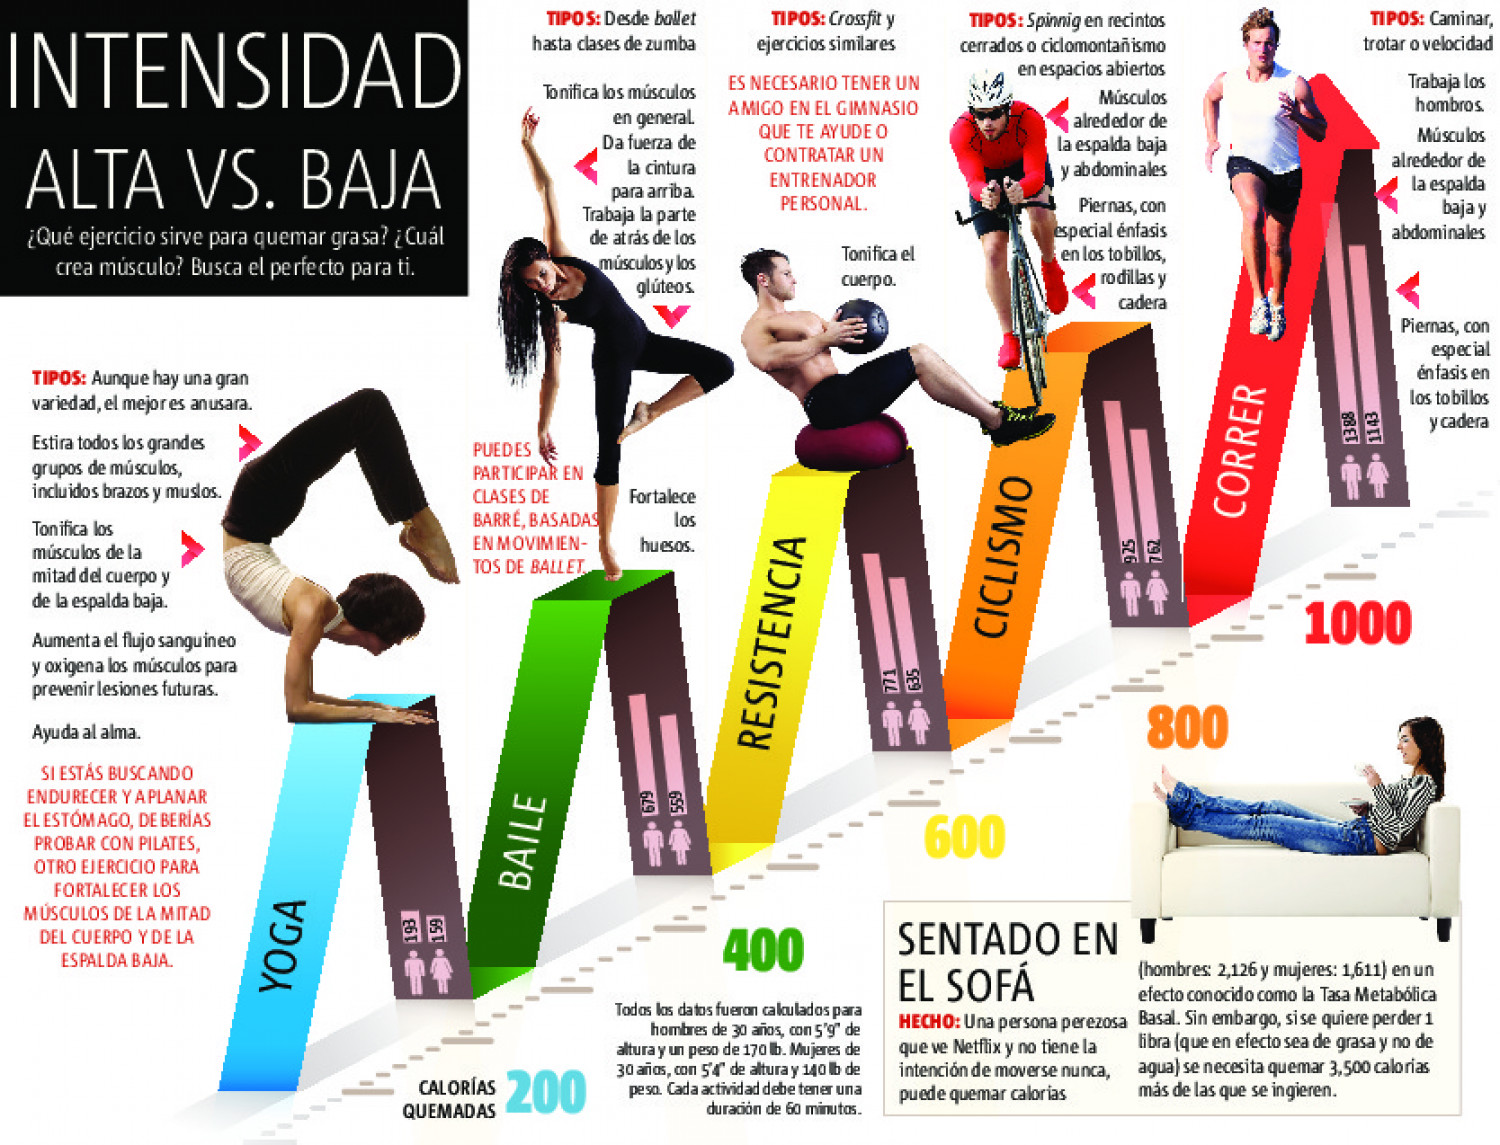 INTENSIDAD ALTA VS. BAJA Infographic